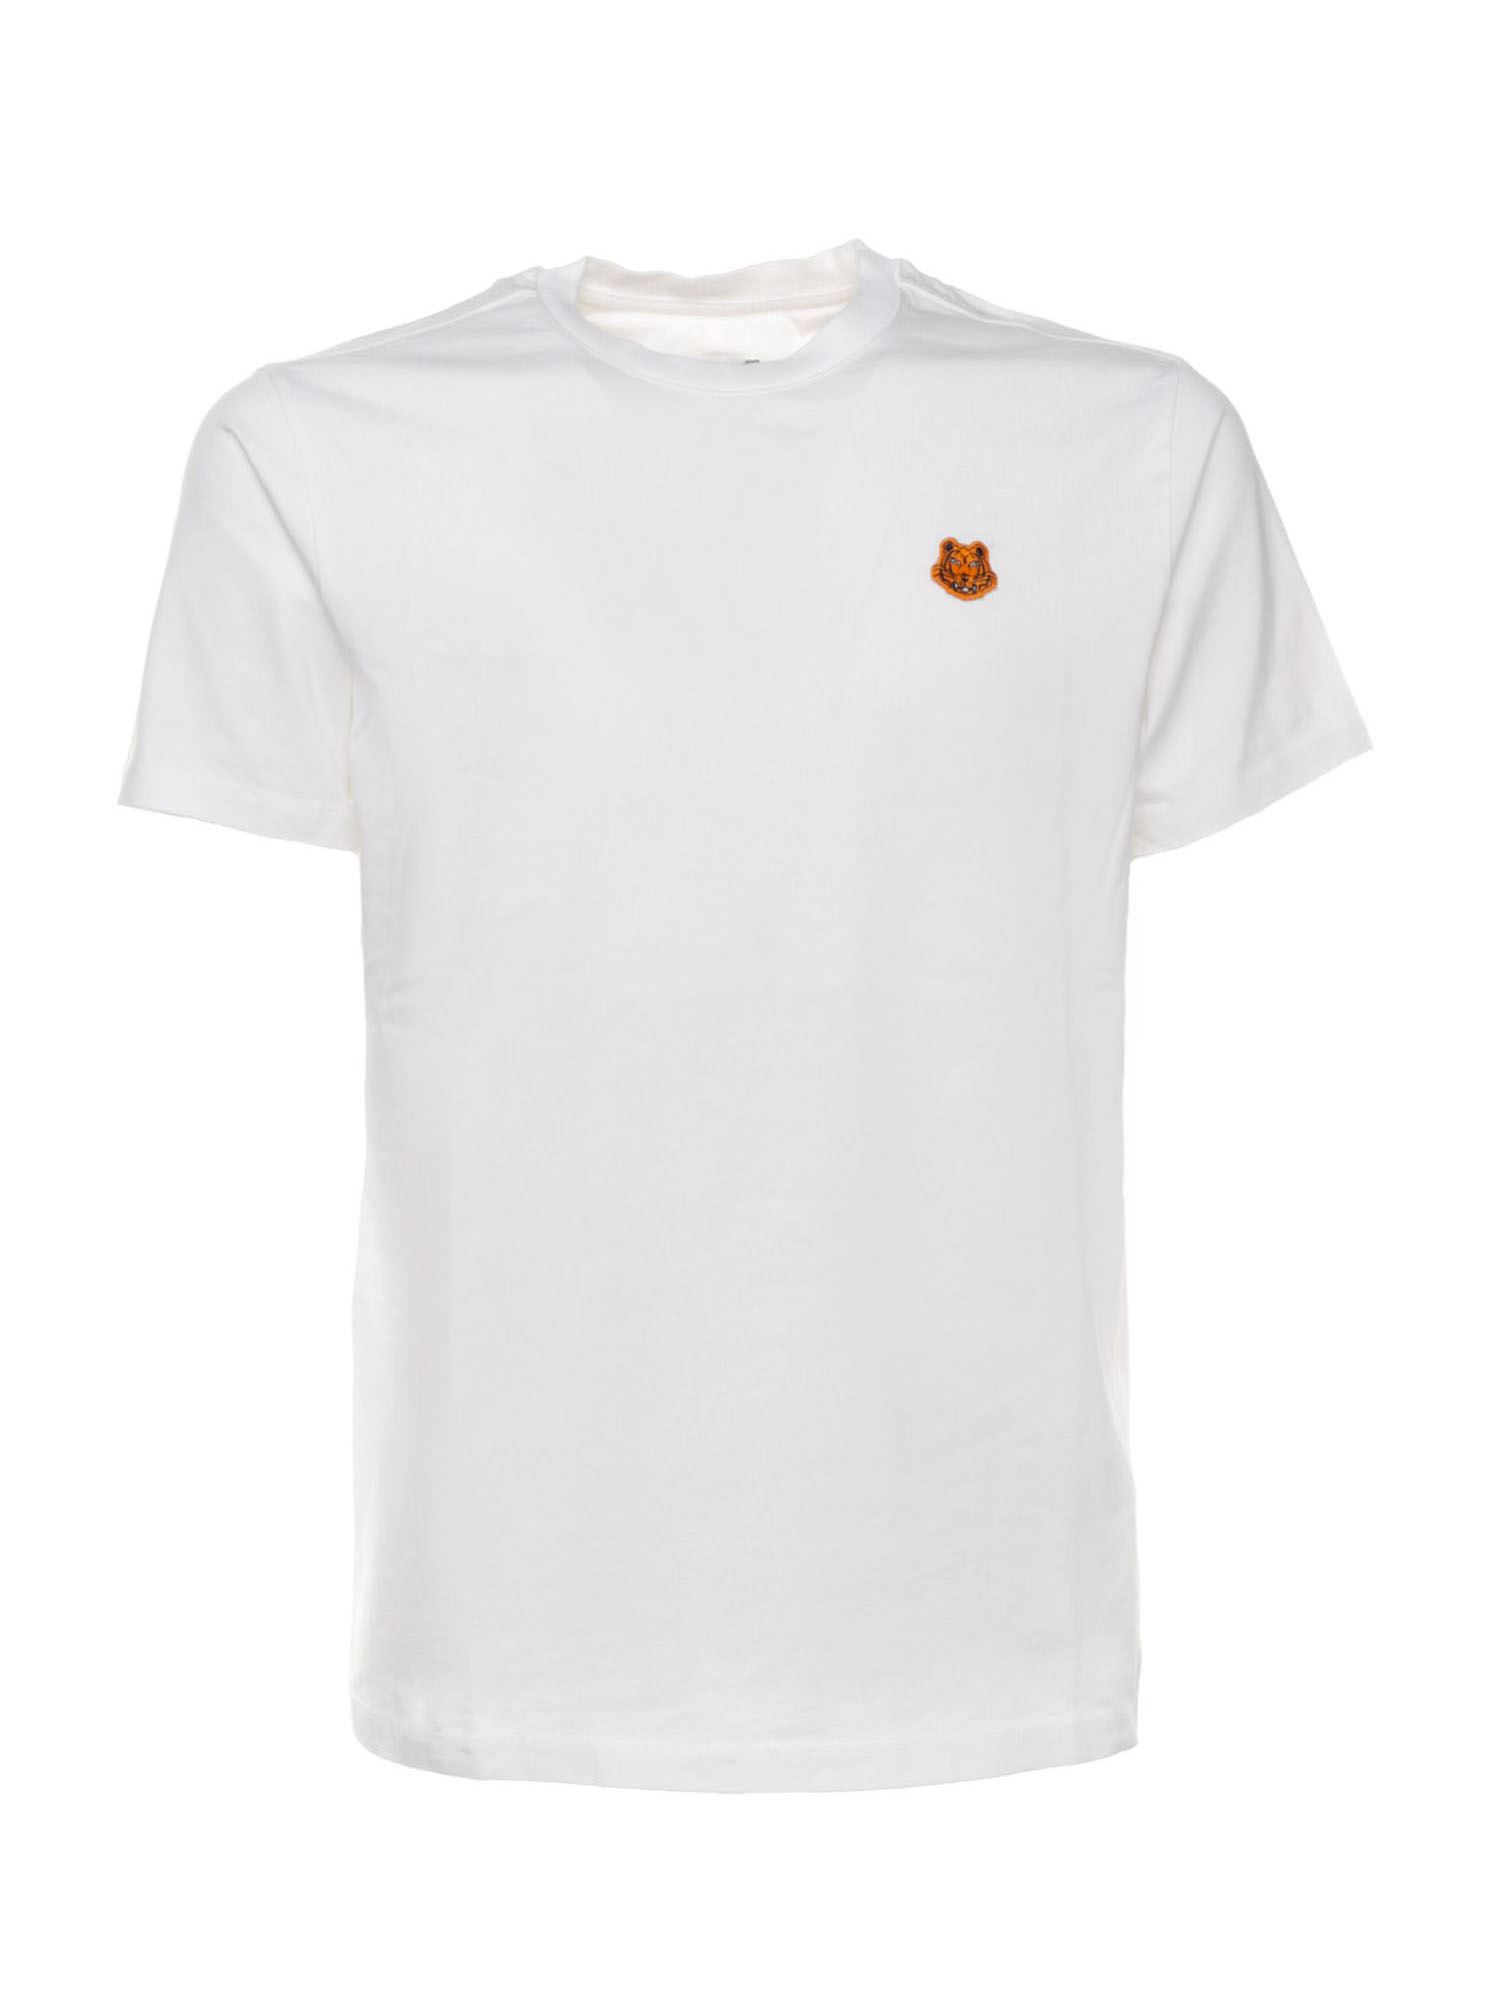 Kenzo TIGER CREST T-SHIRT IN WHITE